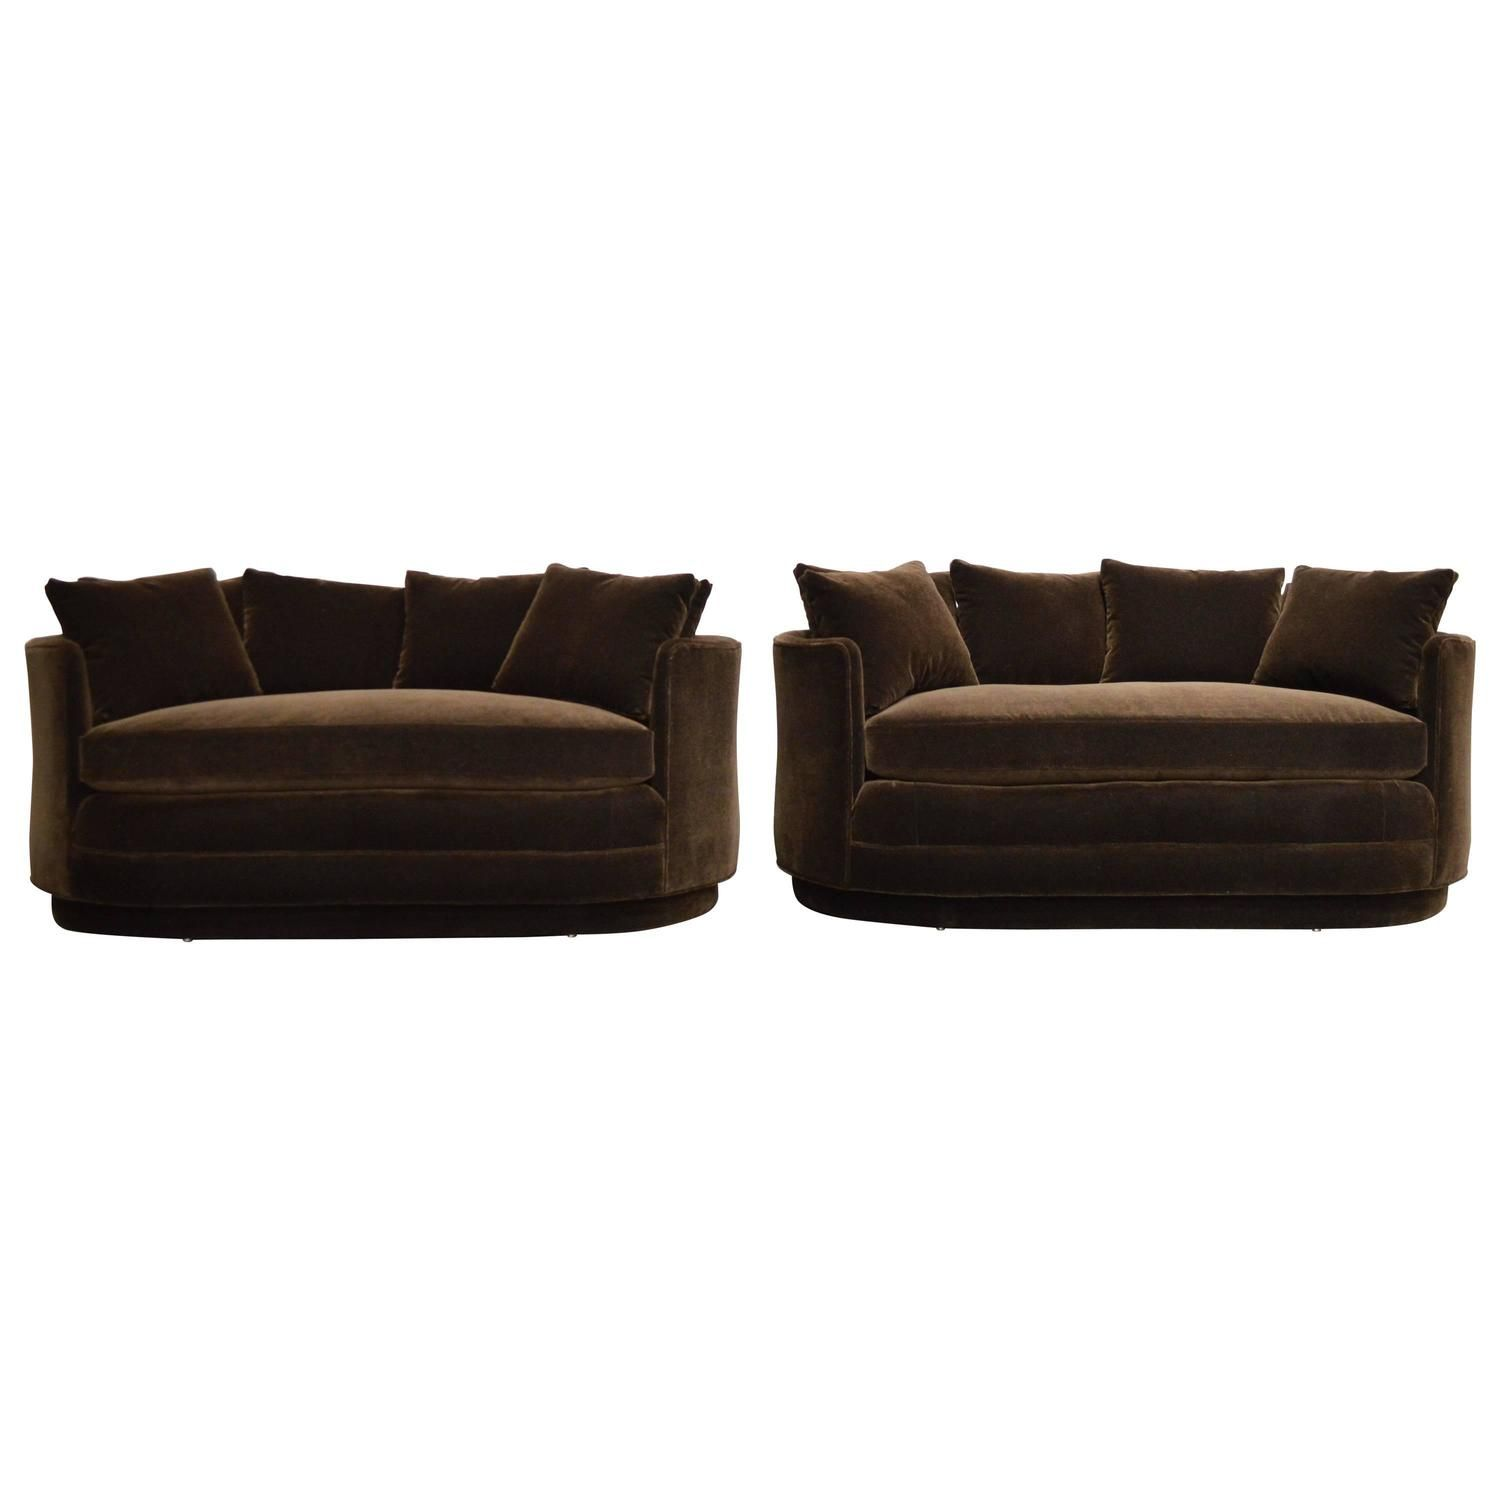 Pair Of Vintage Curved Loveseat Sofas In Chocolate Brown Mohair